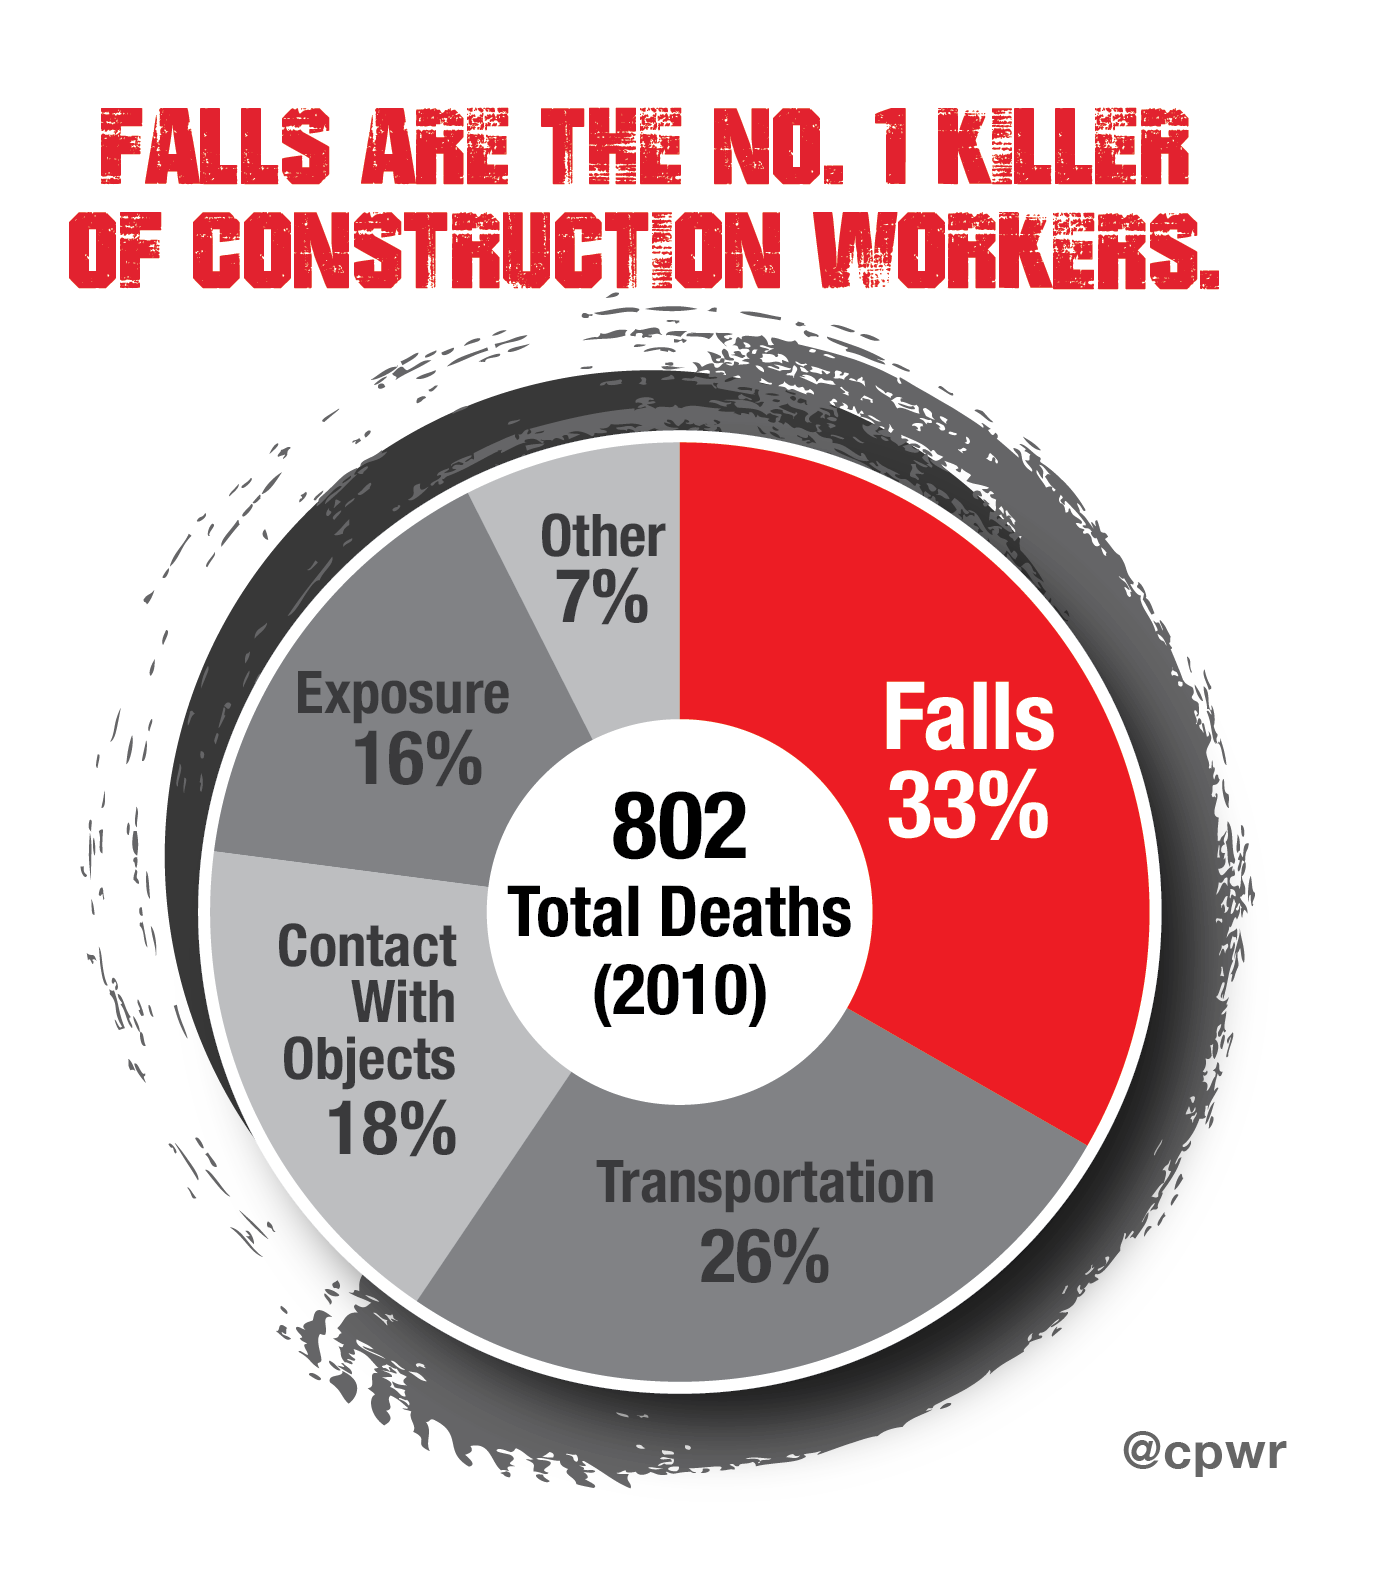 Falls_#1_killer_construction_workers